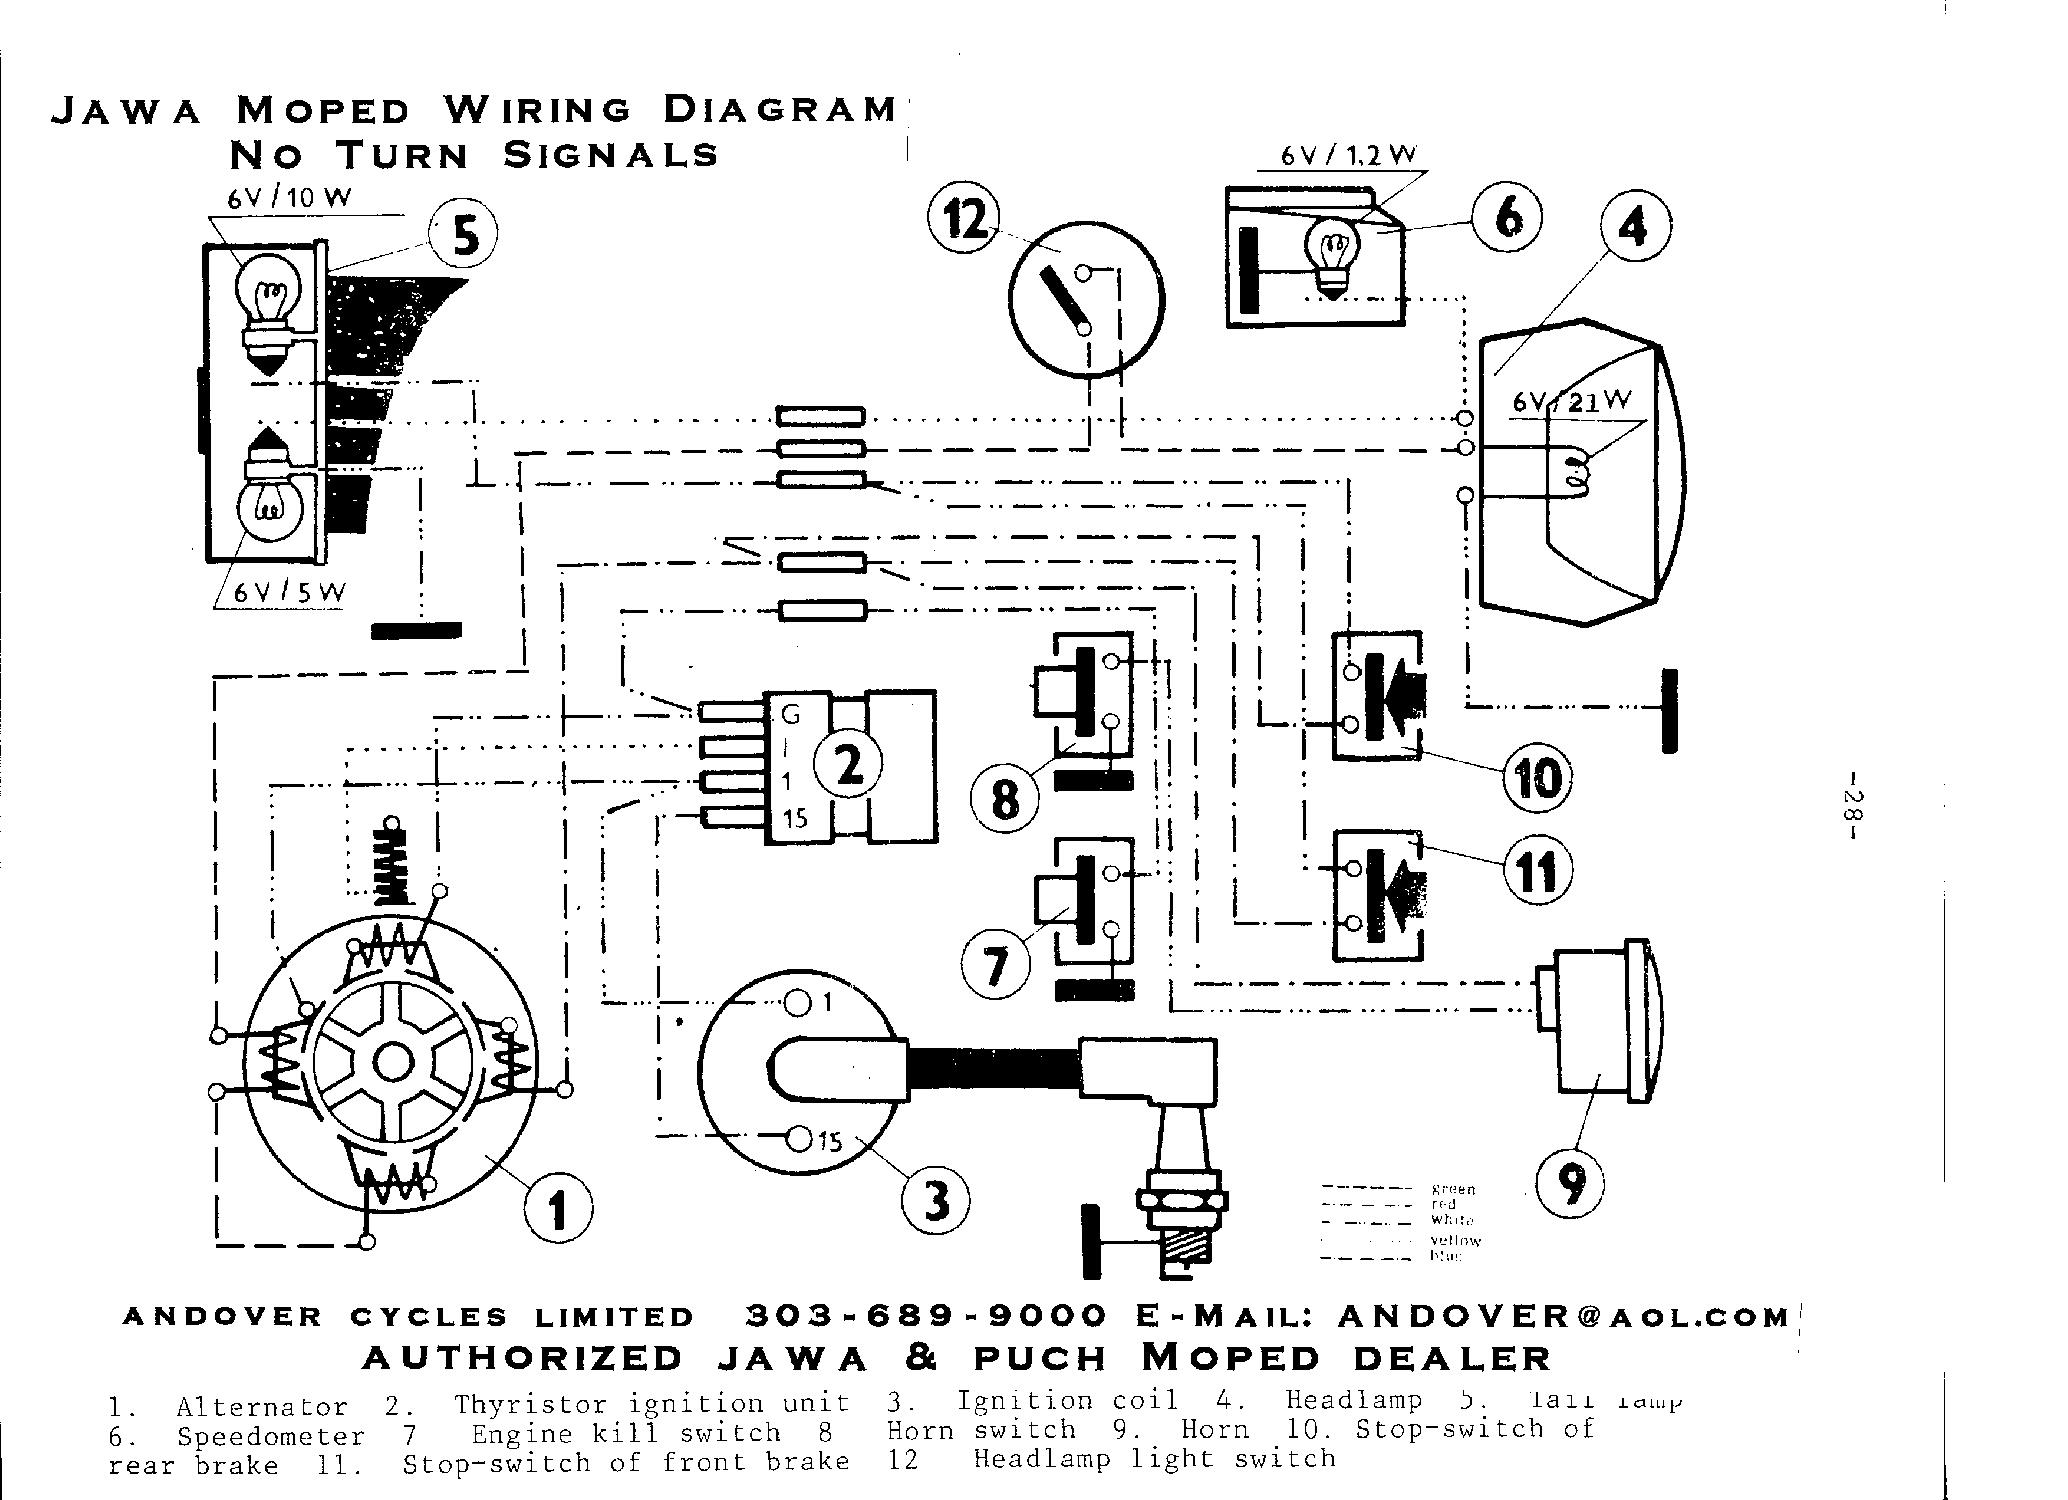 Jawa Moped Wiring Diagram Private Sharing About New Mopeds Rh Moped2 Org